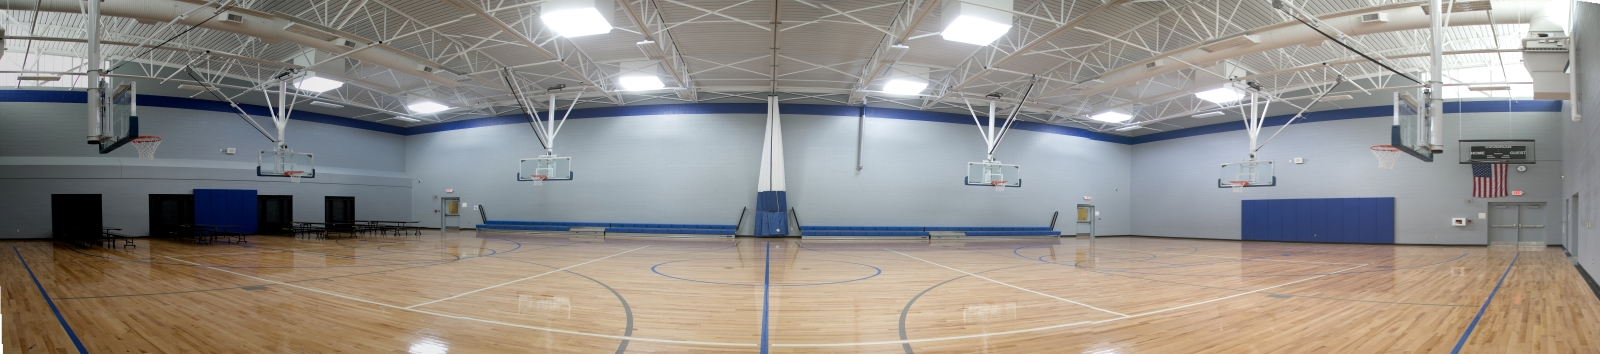 Blue Ridge School Gymnasium